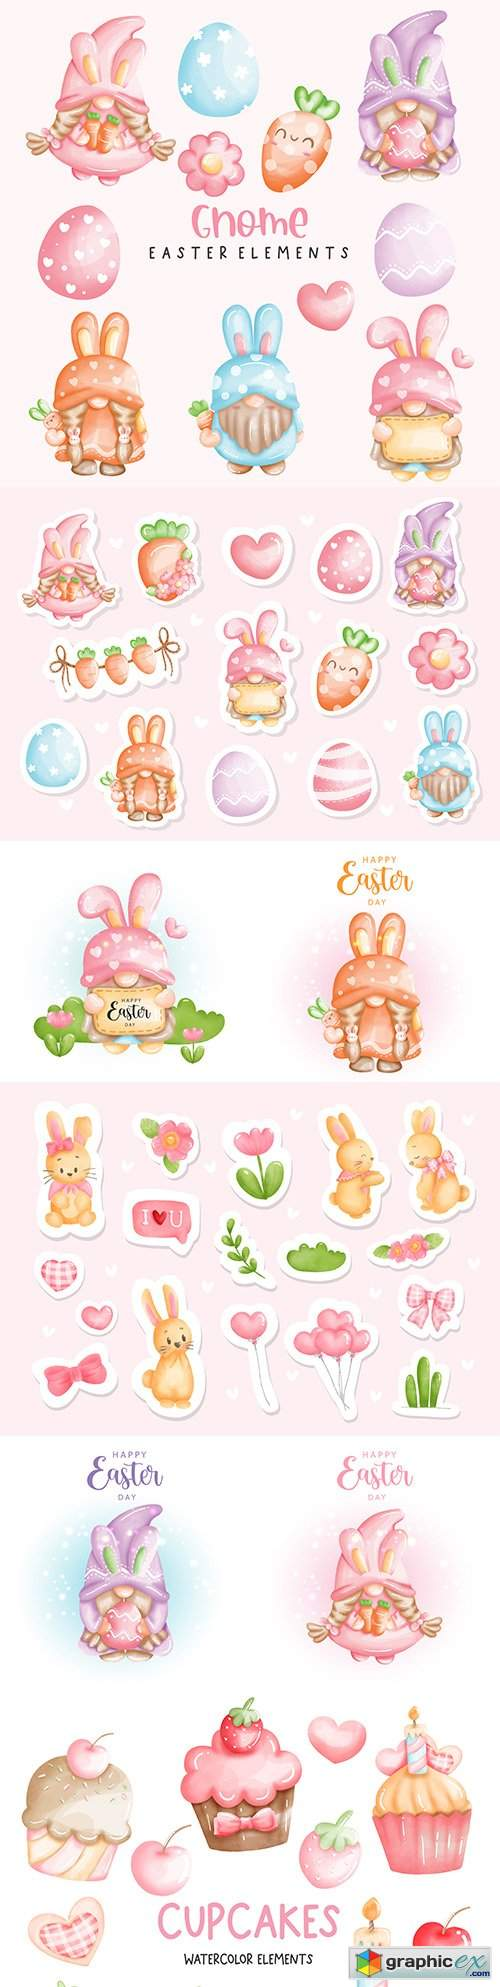 Happy Easter with cute gnome and watercolor stickers